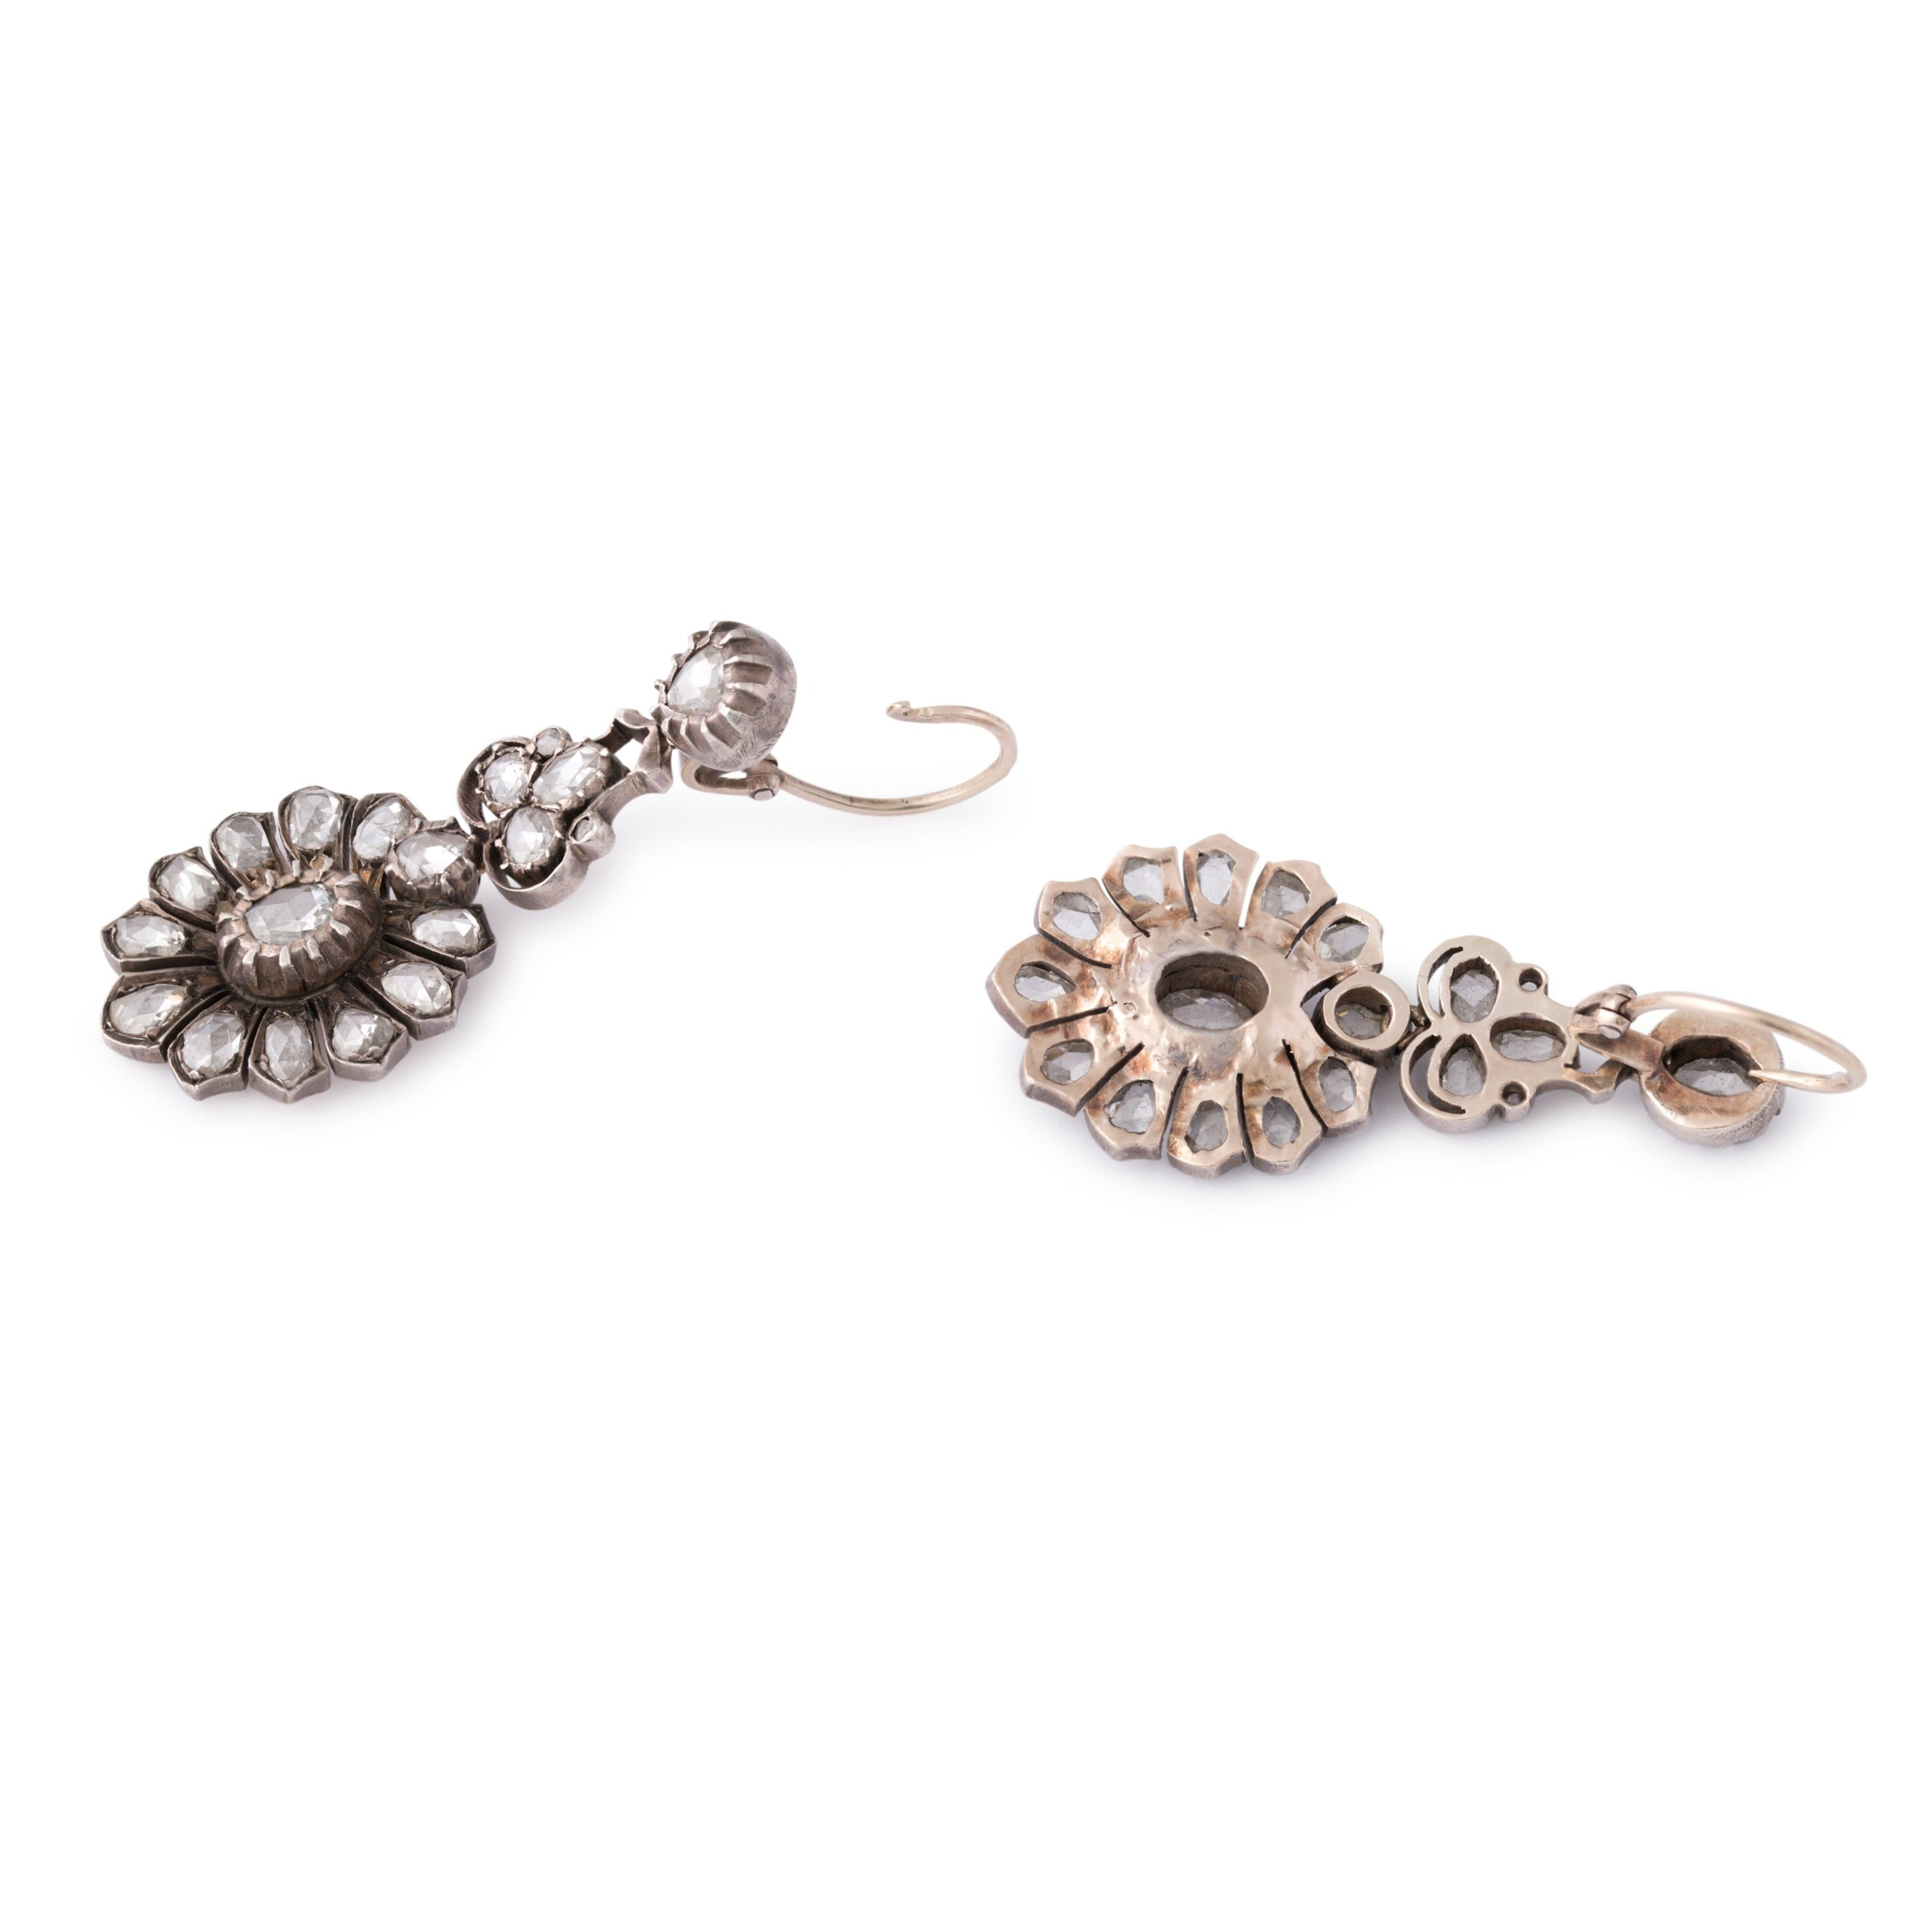 Victorian Rose Cut Diamond, 10k Gold, and Silver Earrings